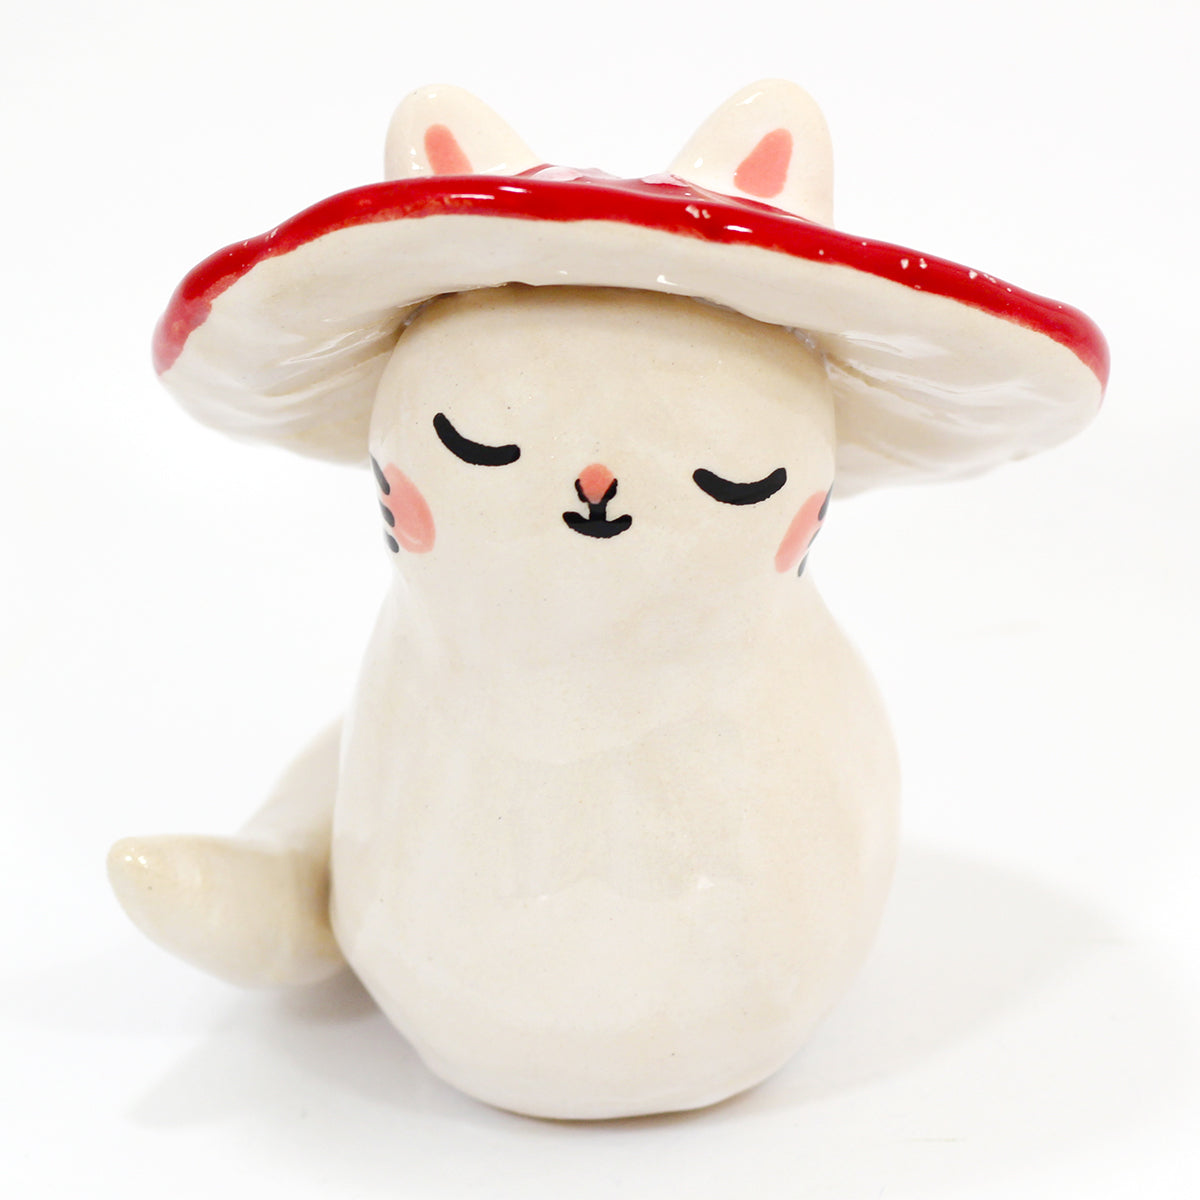 Ceramic Mushroom Kitty Figurine #1324